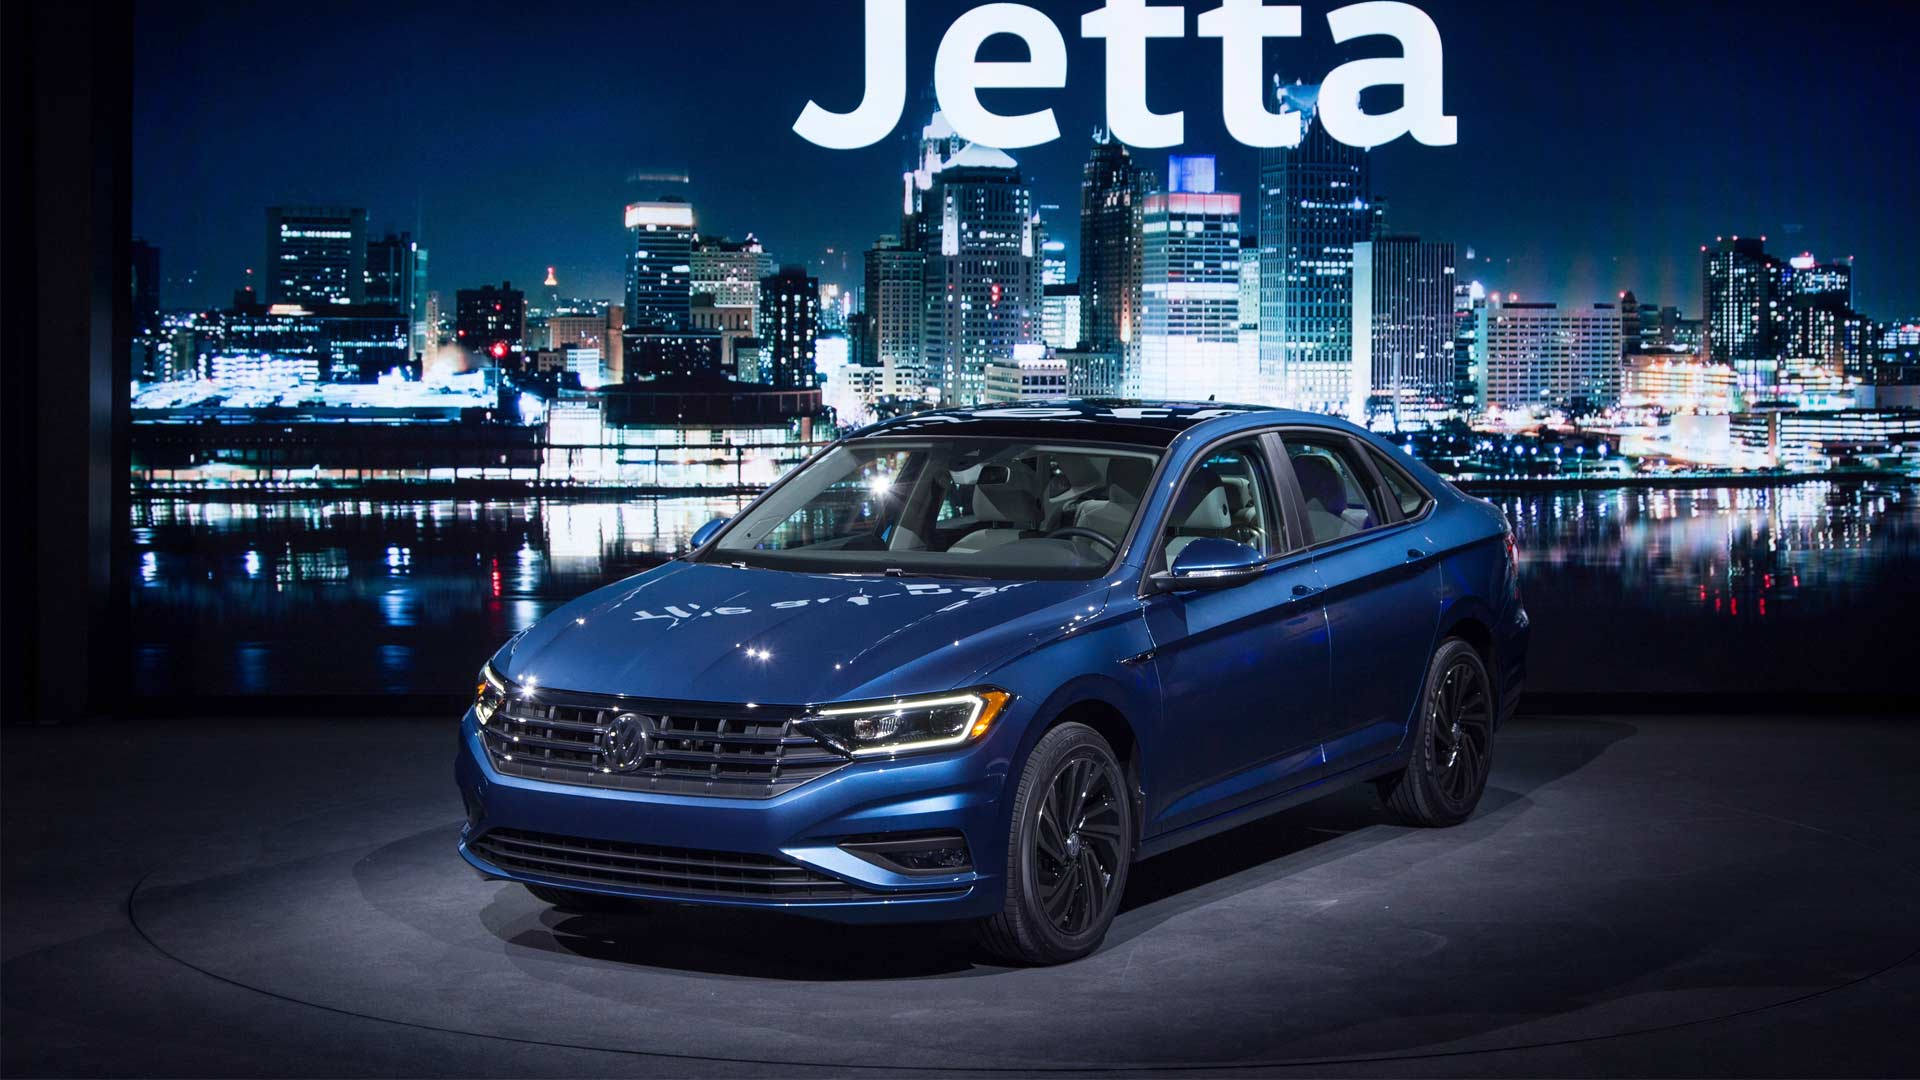 2019-7th-Generation-Volkswagen-Jetta_3